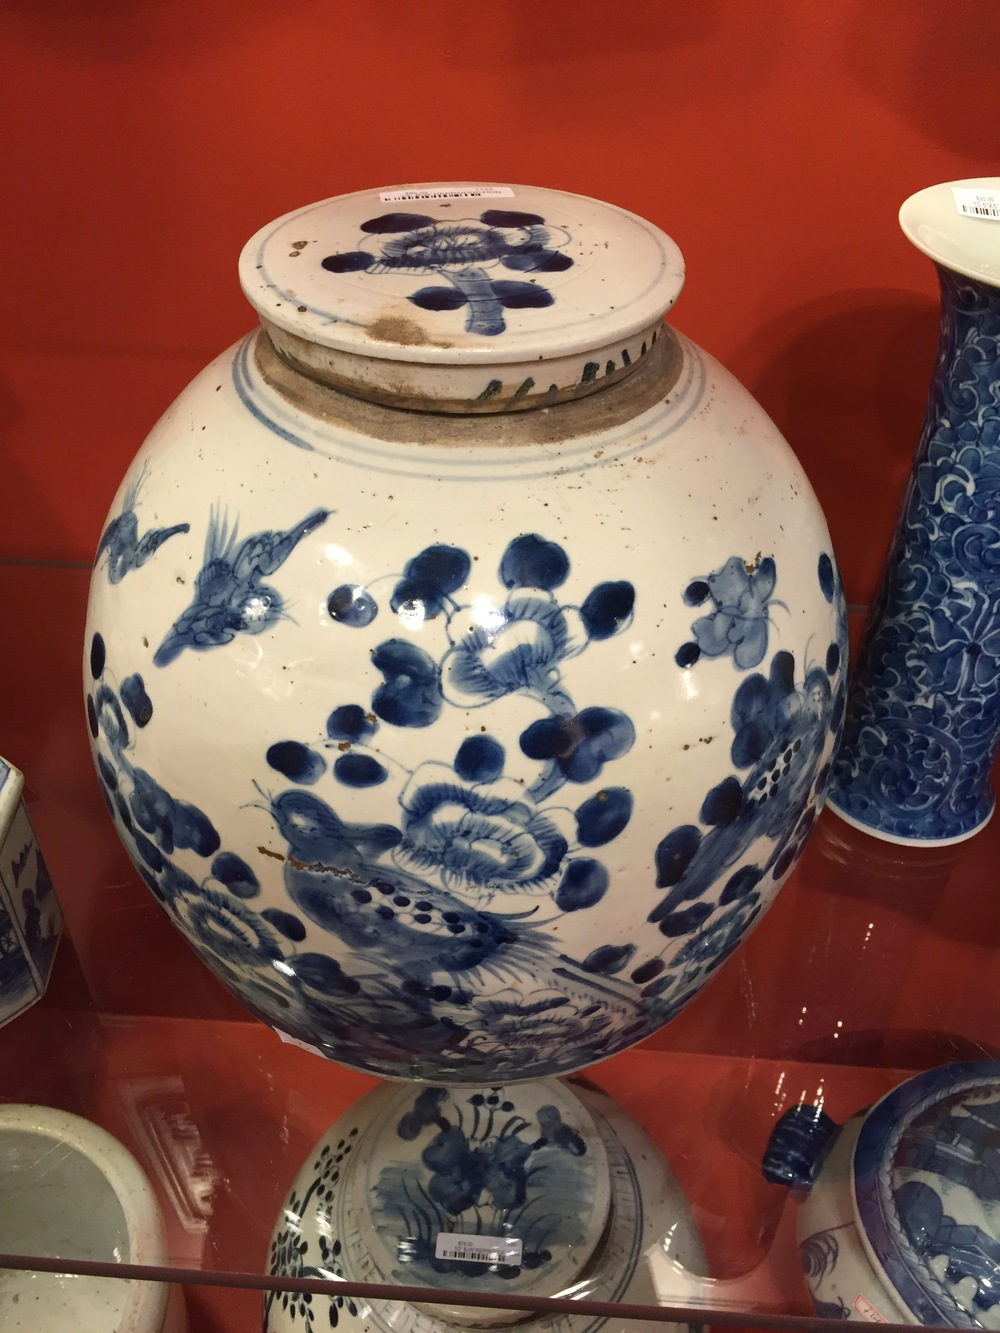 You can never, ever go wrong with blue and white porcelain.